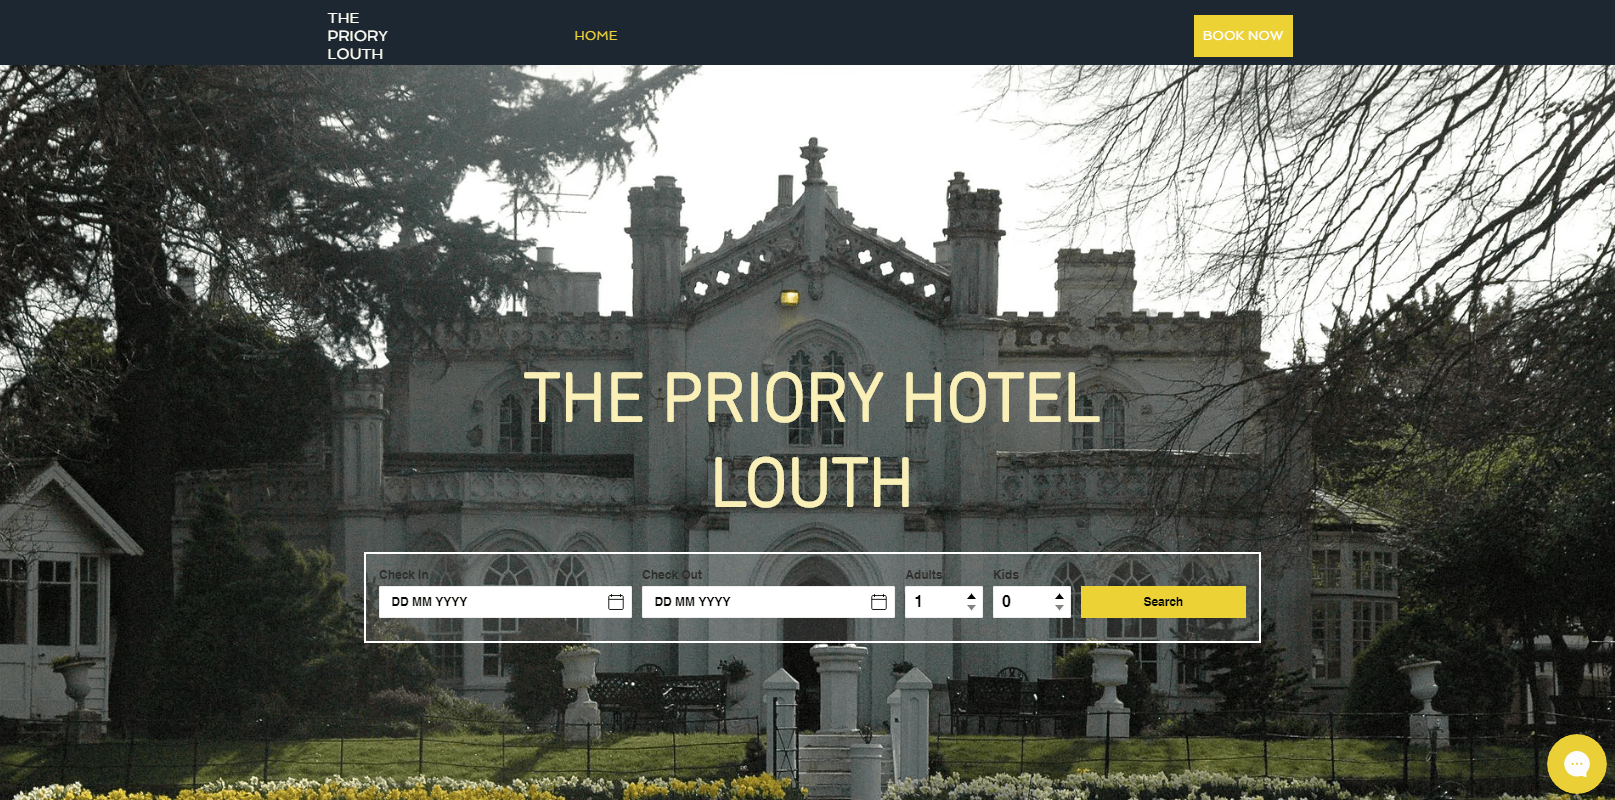 The Priory Hotel Louth